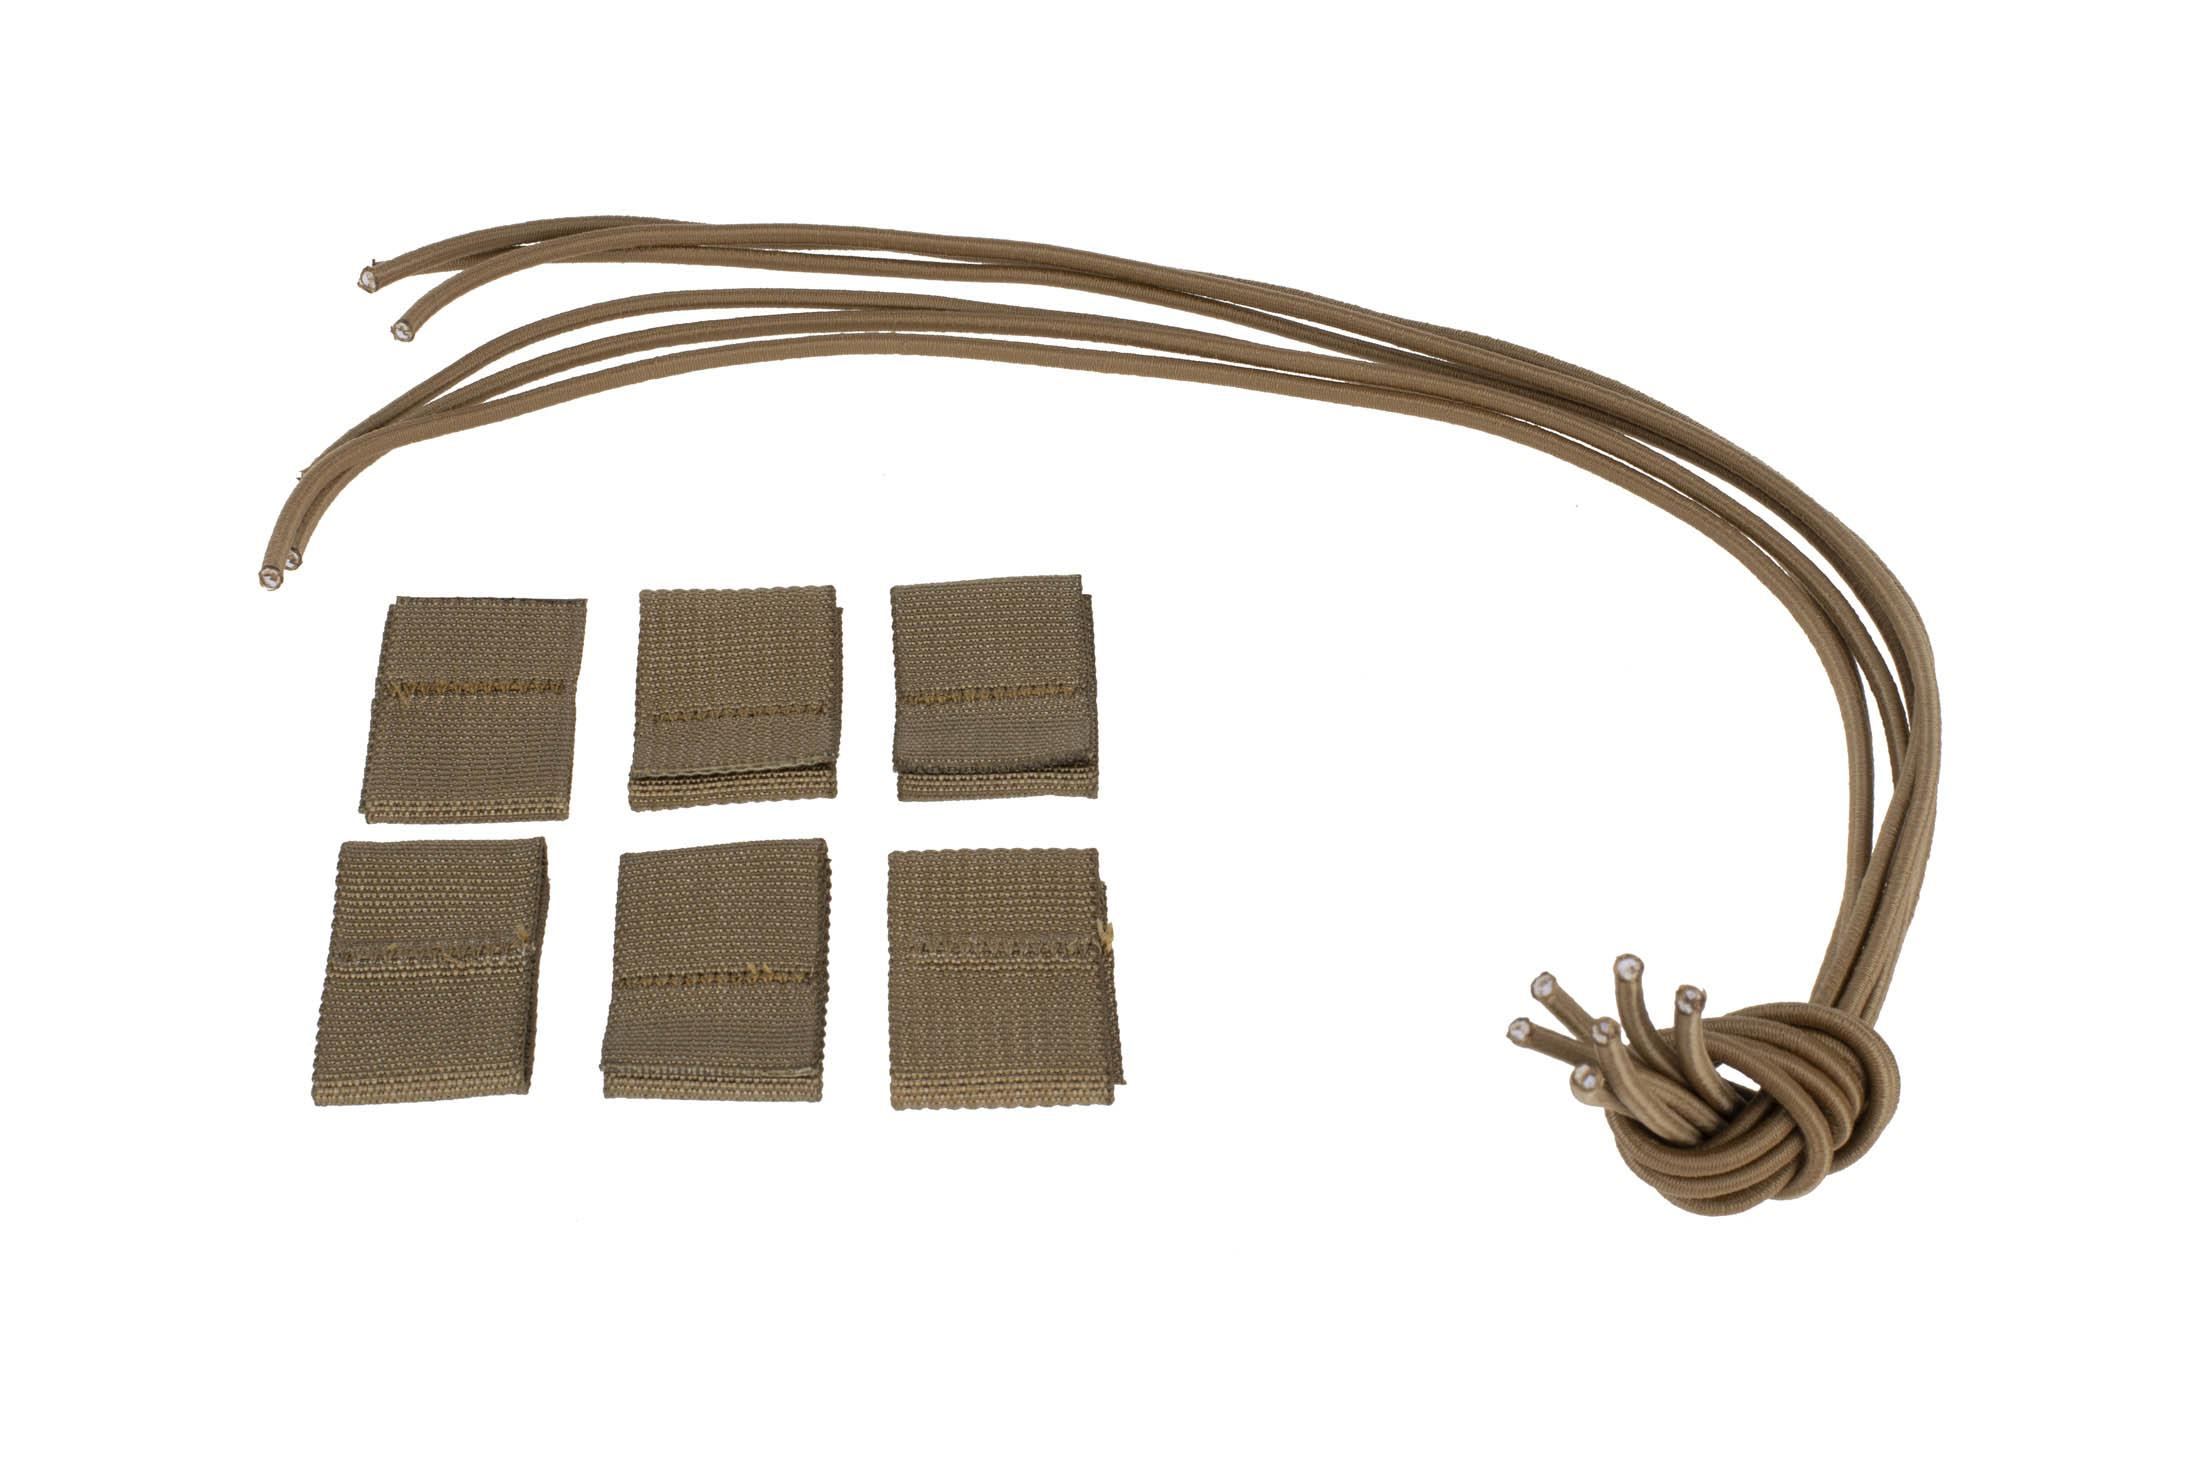 High Speed Gear Bungee Replacement Kit includes six nylon stoppers and bungee straps, coyote brown and coyote brown.